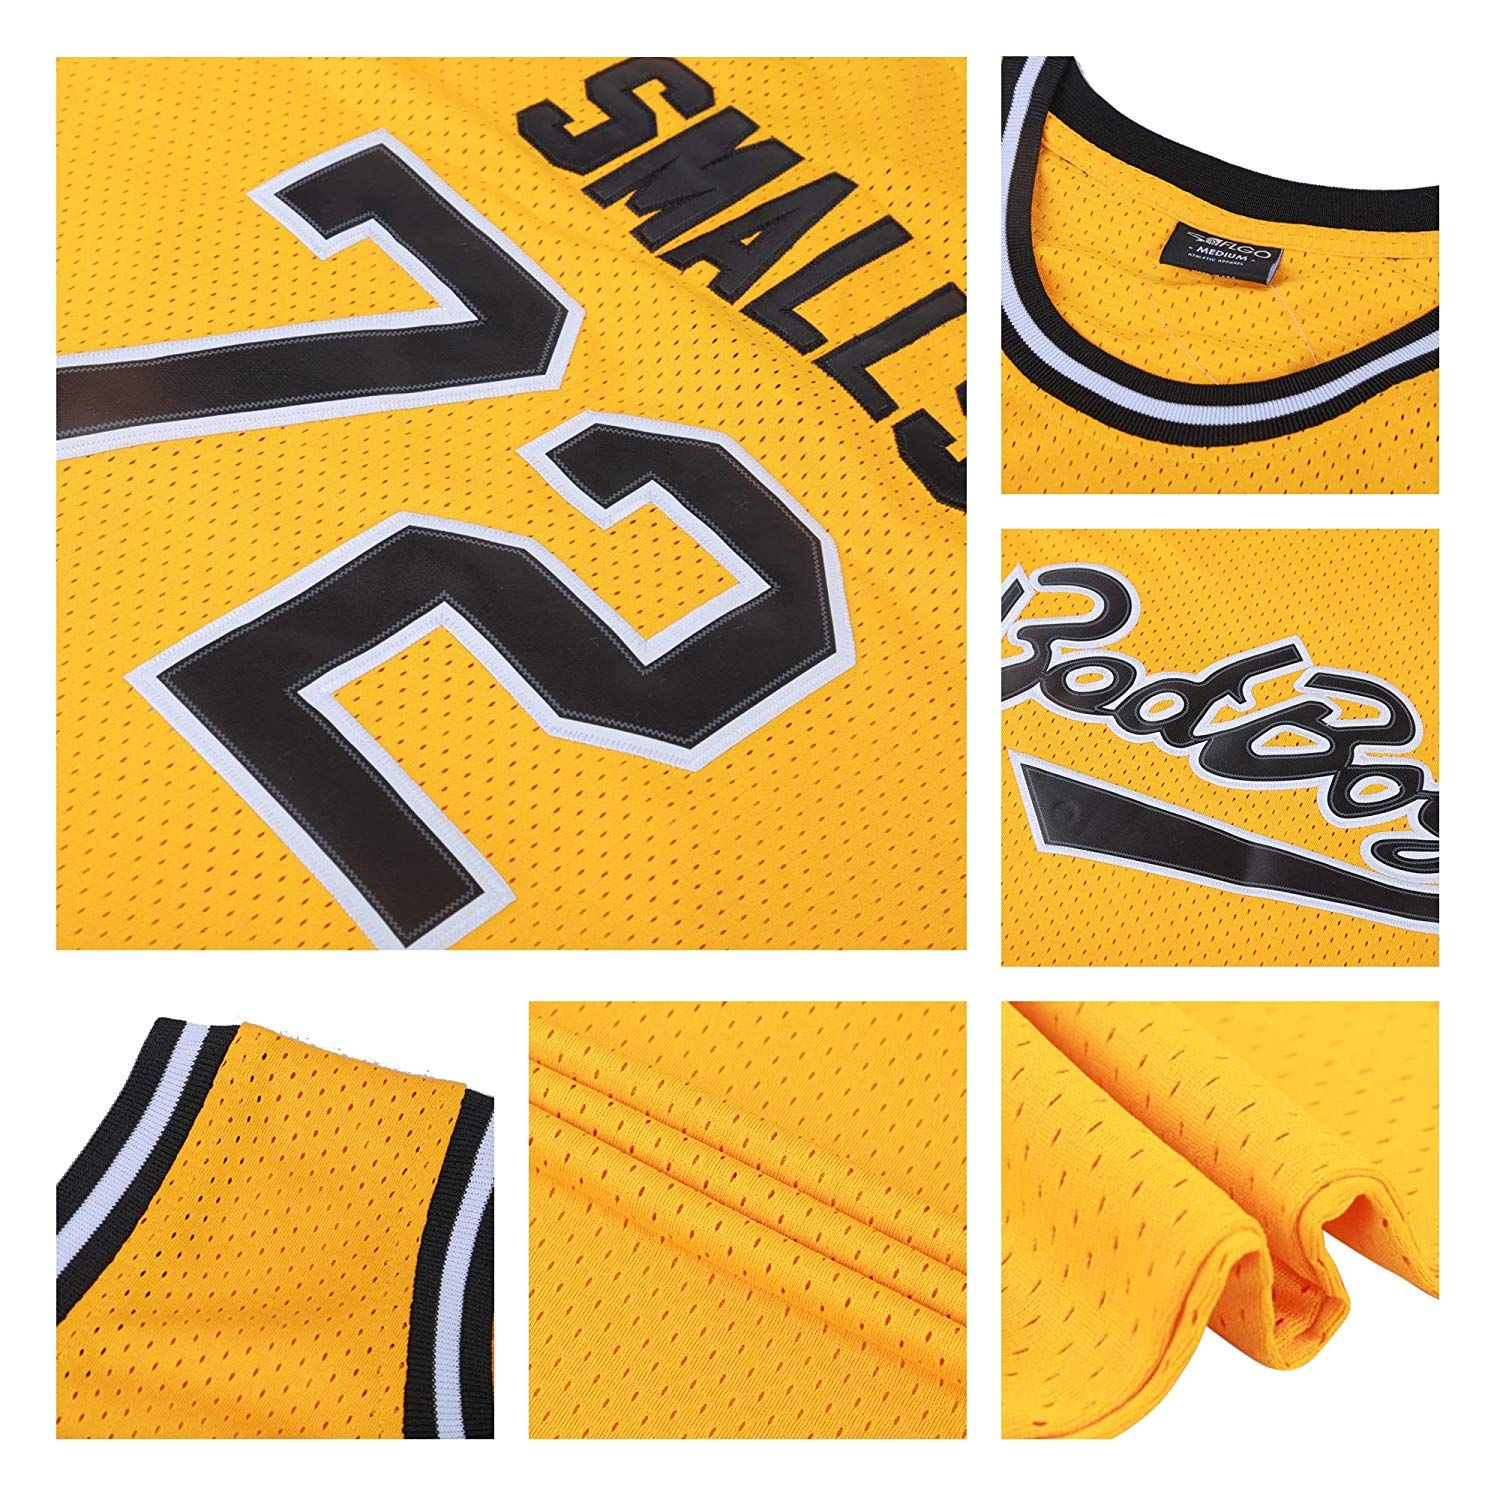 43d202687680 BadBoy 72 Smalls Notorious Biggie yellow jersey -  bad boy jersey   smalls notorious jersey  biggie jersey  yellow jersey